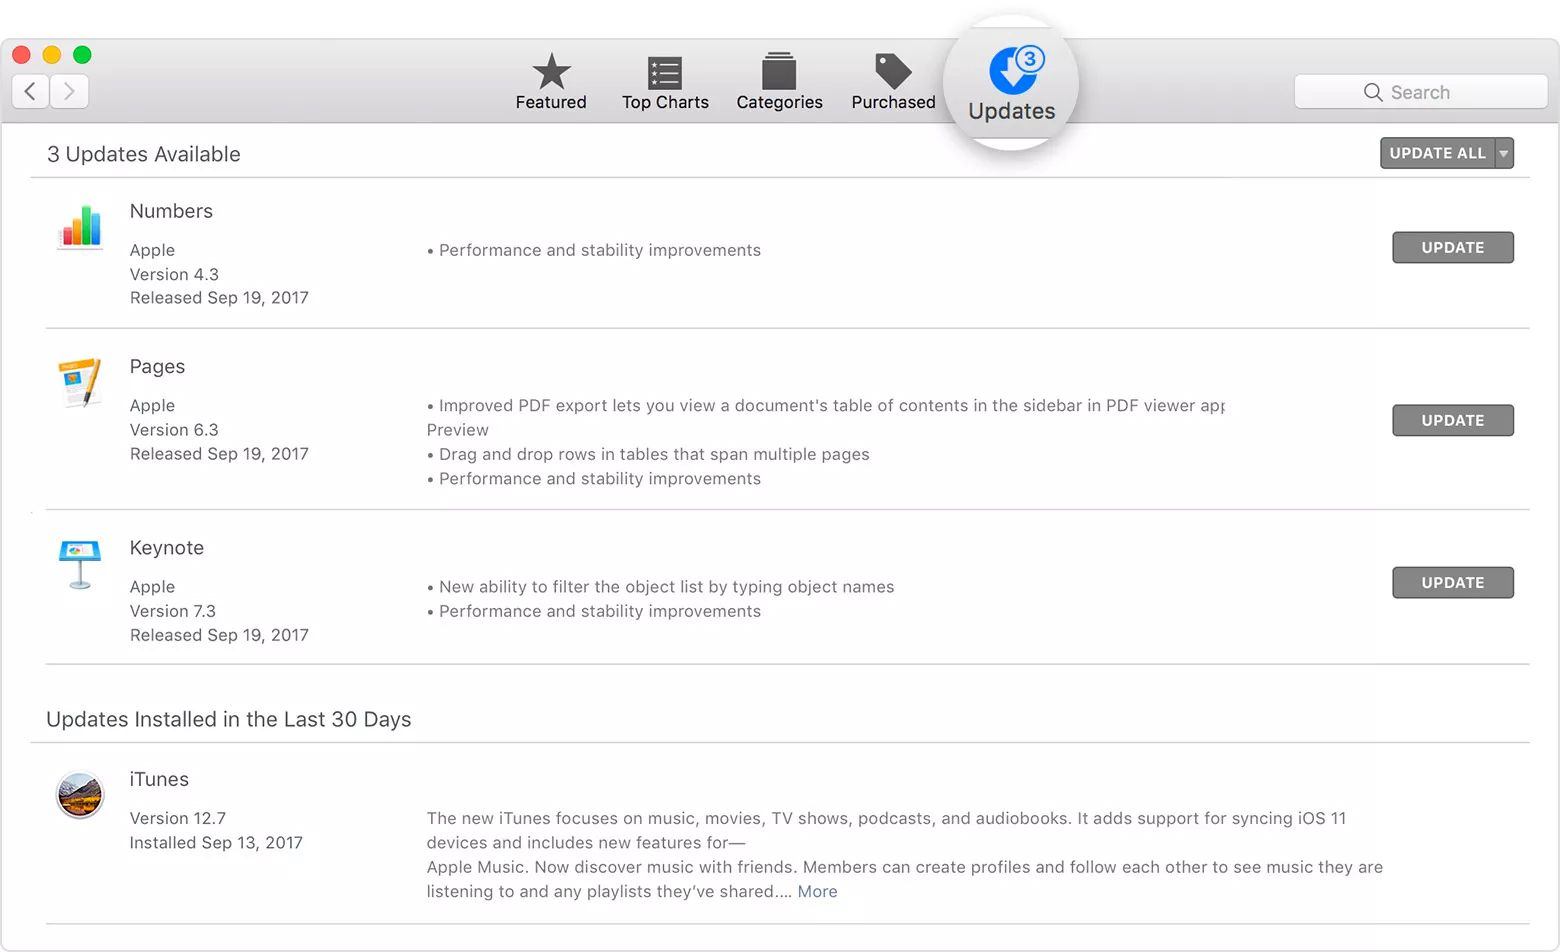 Mac App Store with Updates tab highlighted